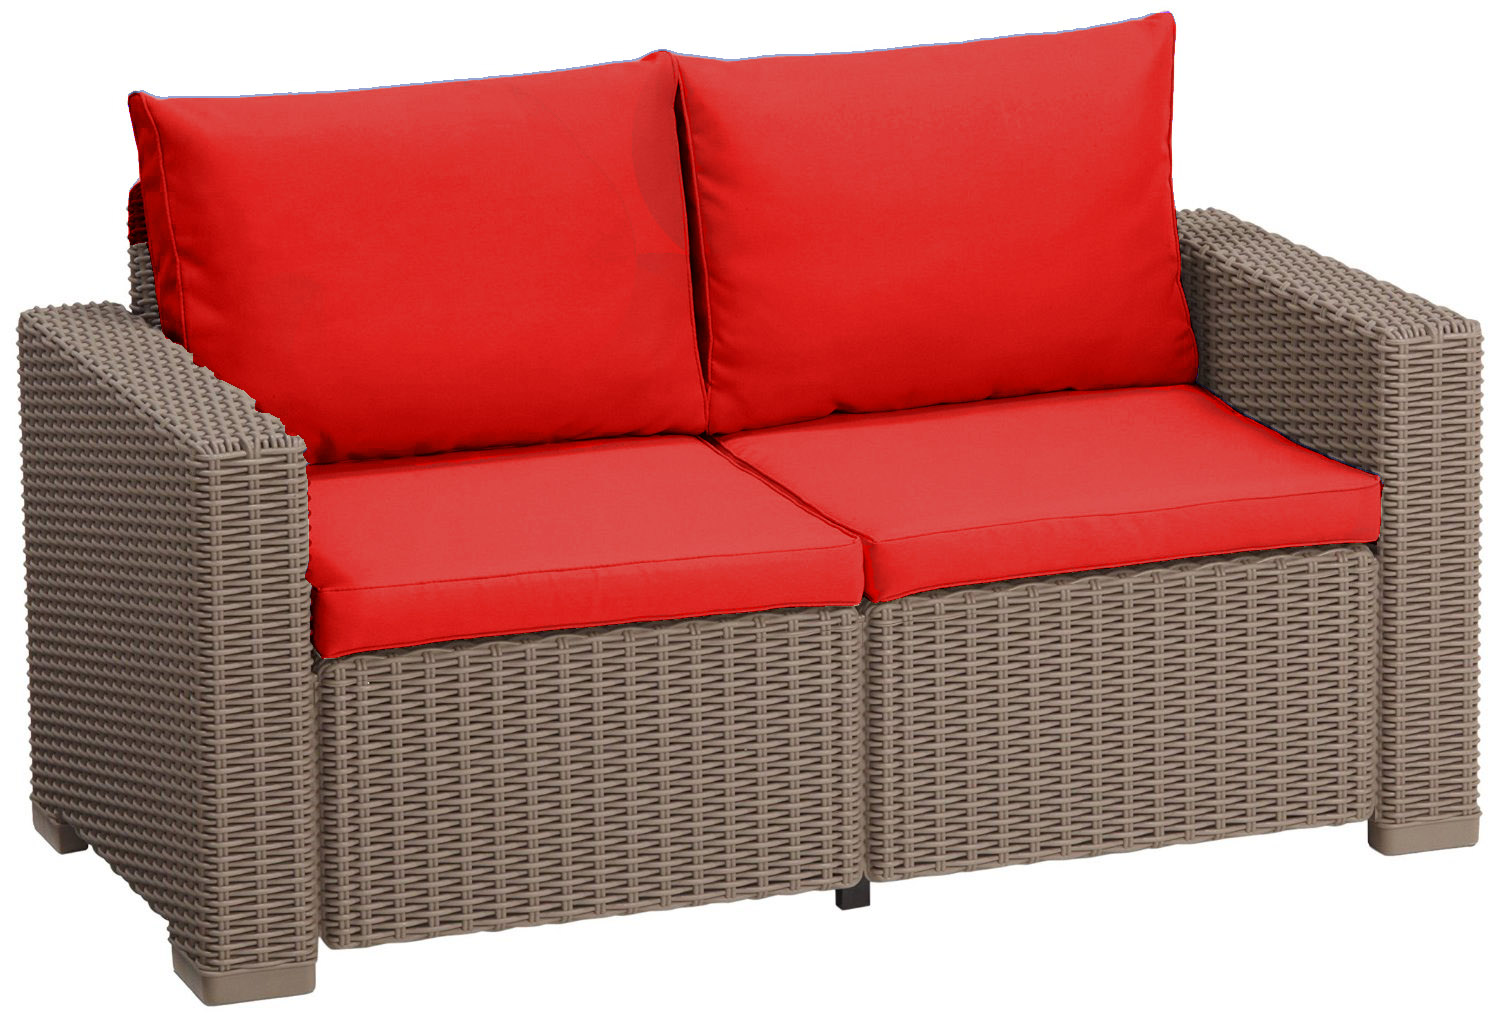 cushion pads for keter allibert california rattan garden furniture sofa armchair ebay. Black Bedroom Furniture Sets. Home Design Ideas